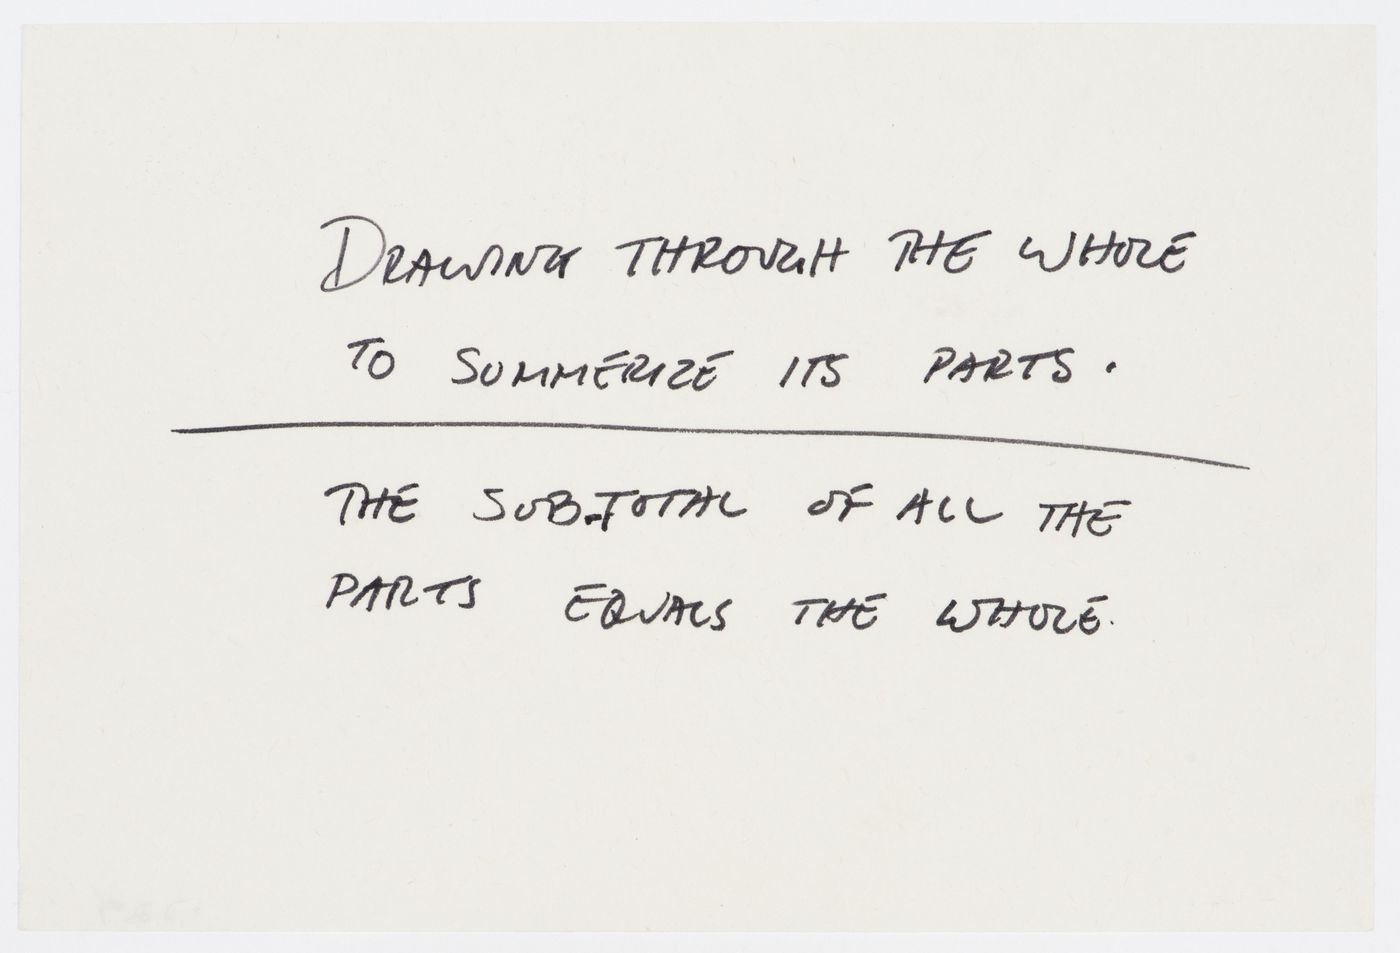 Drawing through the whole to summerize its parts. / The sub-total of all the parts equals the whole.